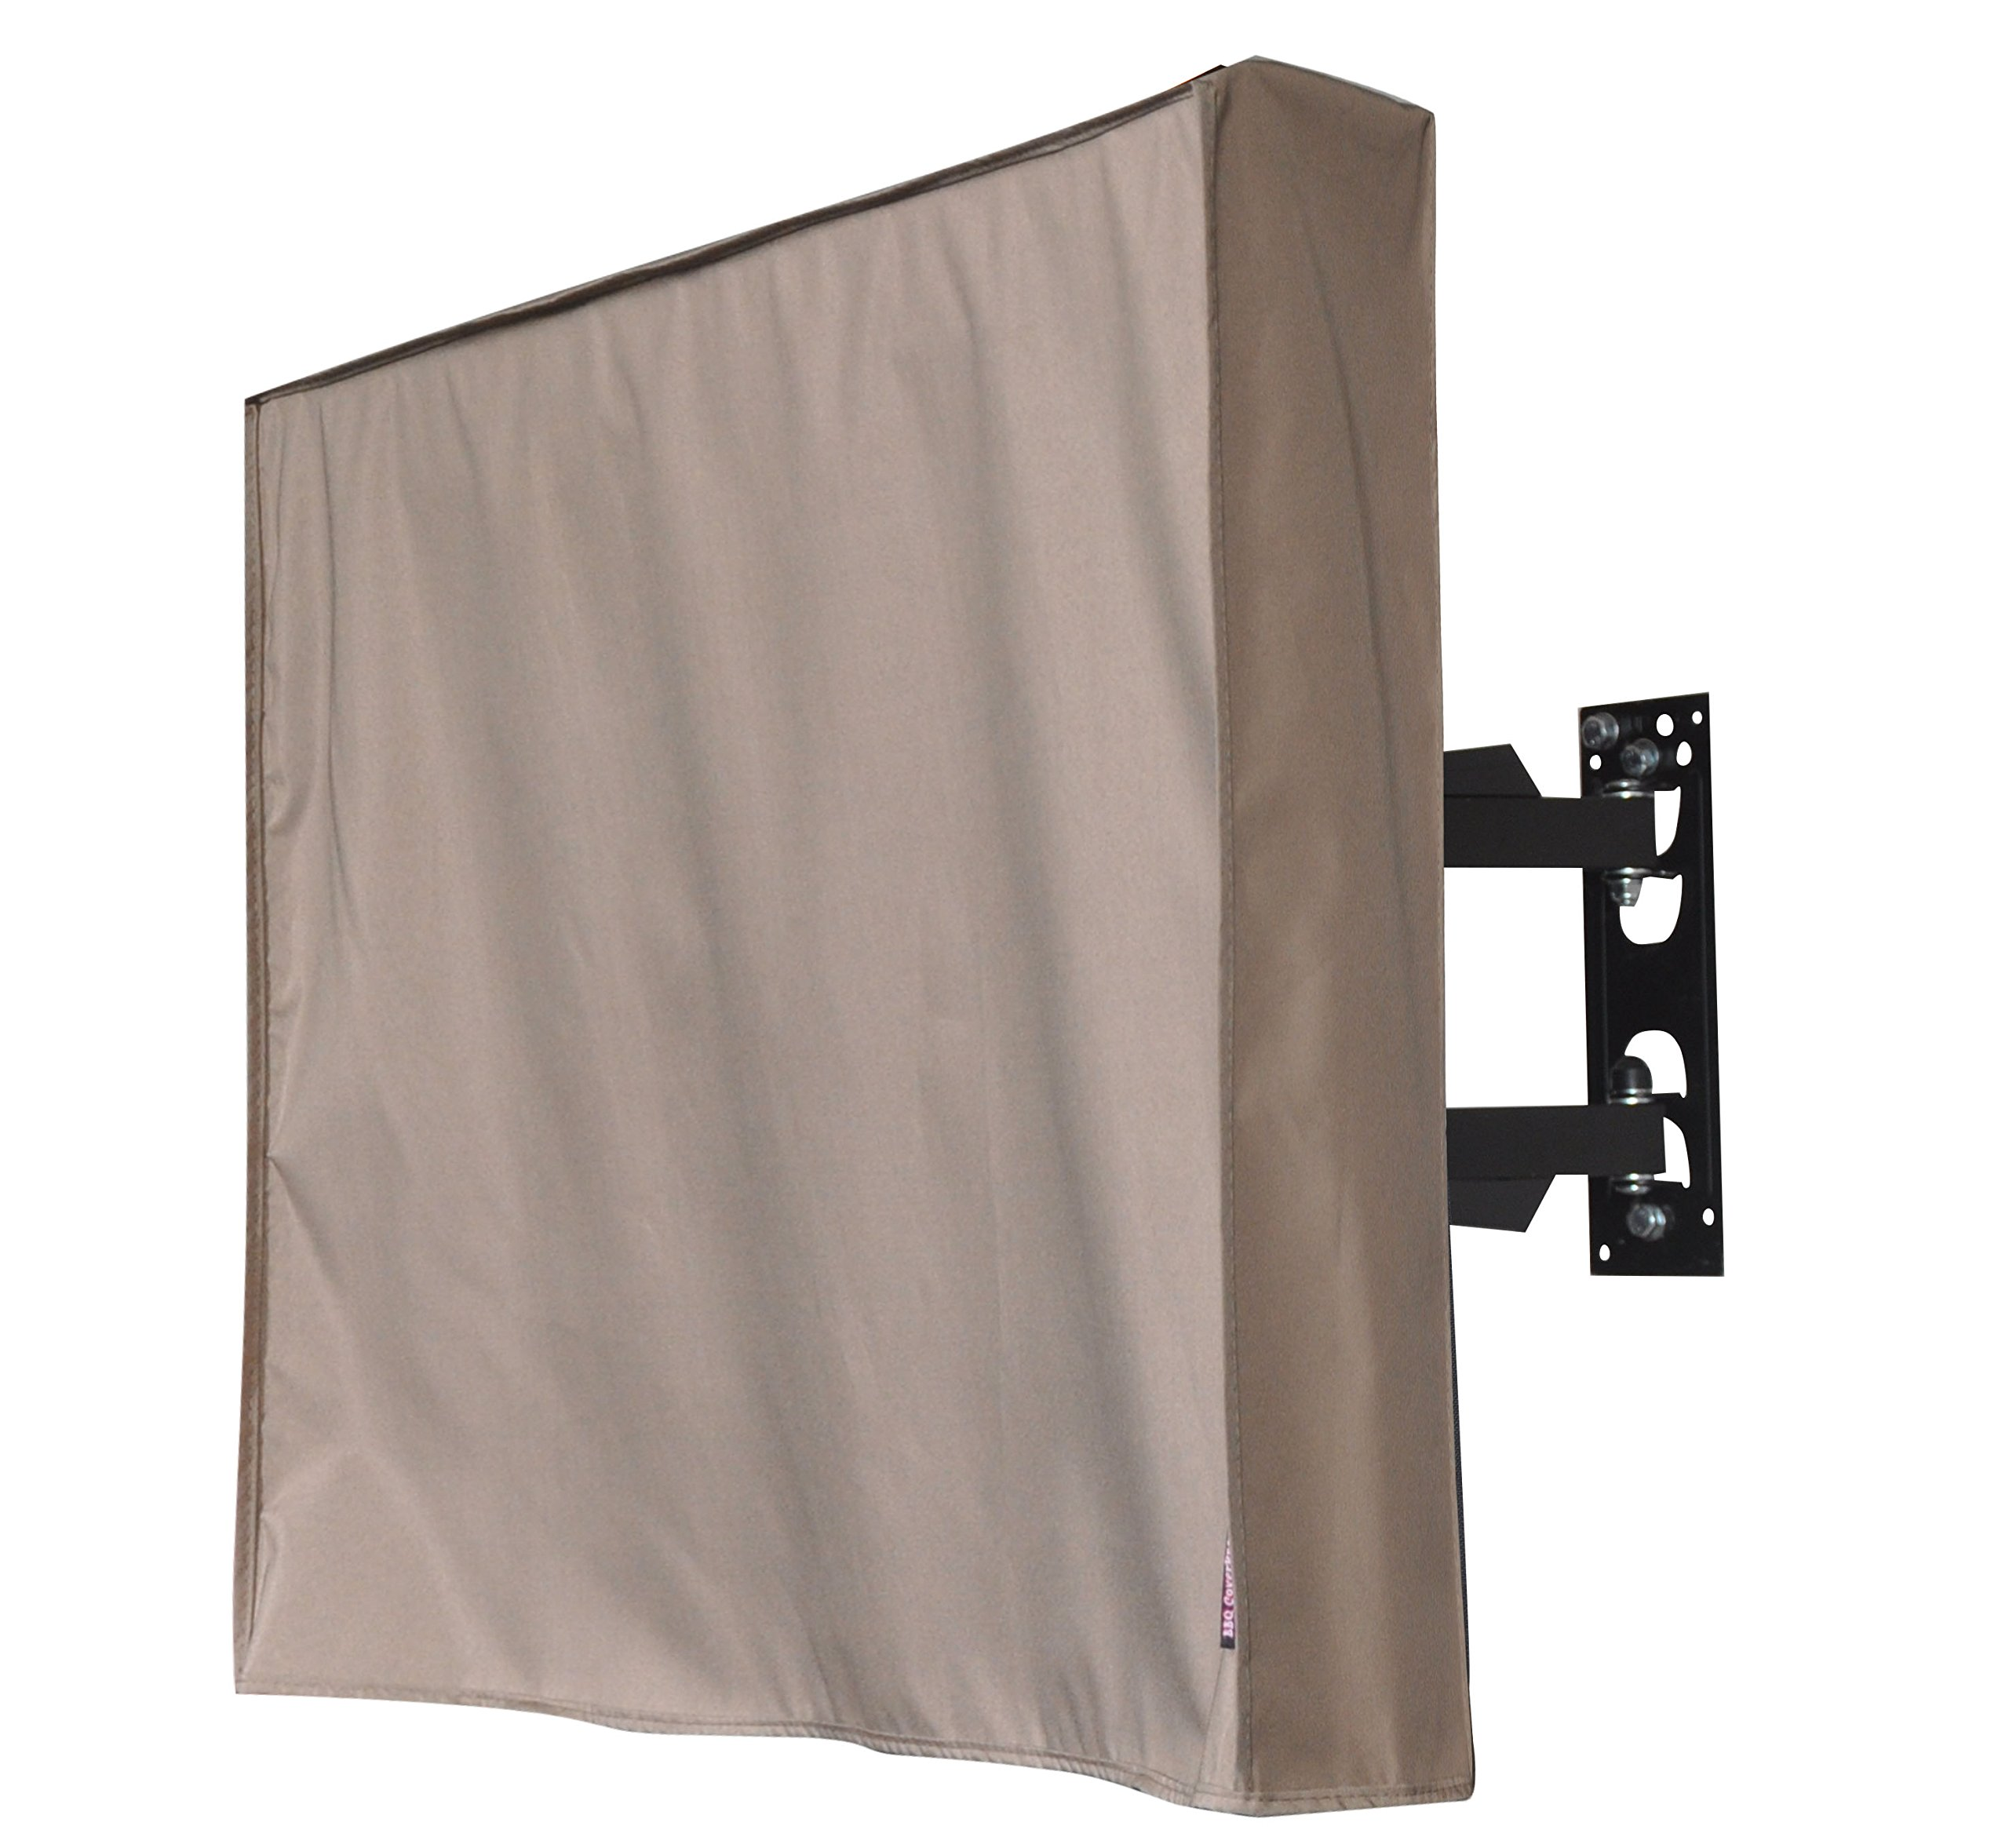 Outdoor 72''TV Cover, Brown Weatherproof Universal Protector for 72'' LCD, LED, Plasma Television Sets - Compatible with Standard Mounts and Stands. Built In Remote Controller Storage Pocket by BBQ Coverpro